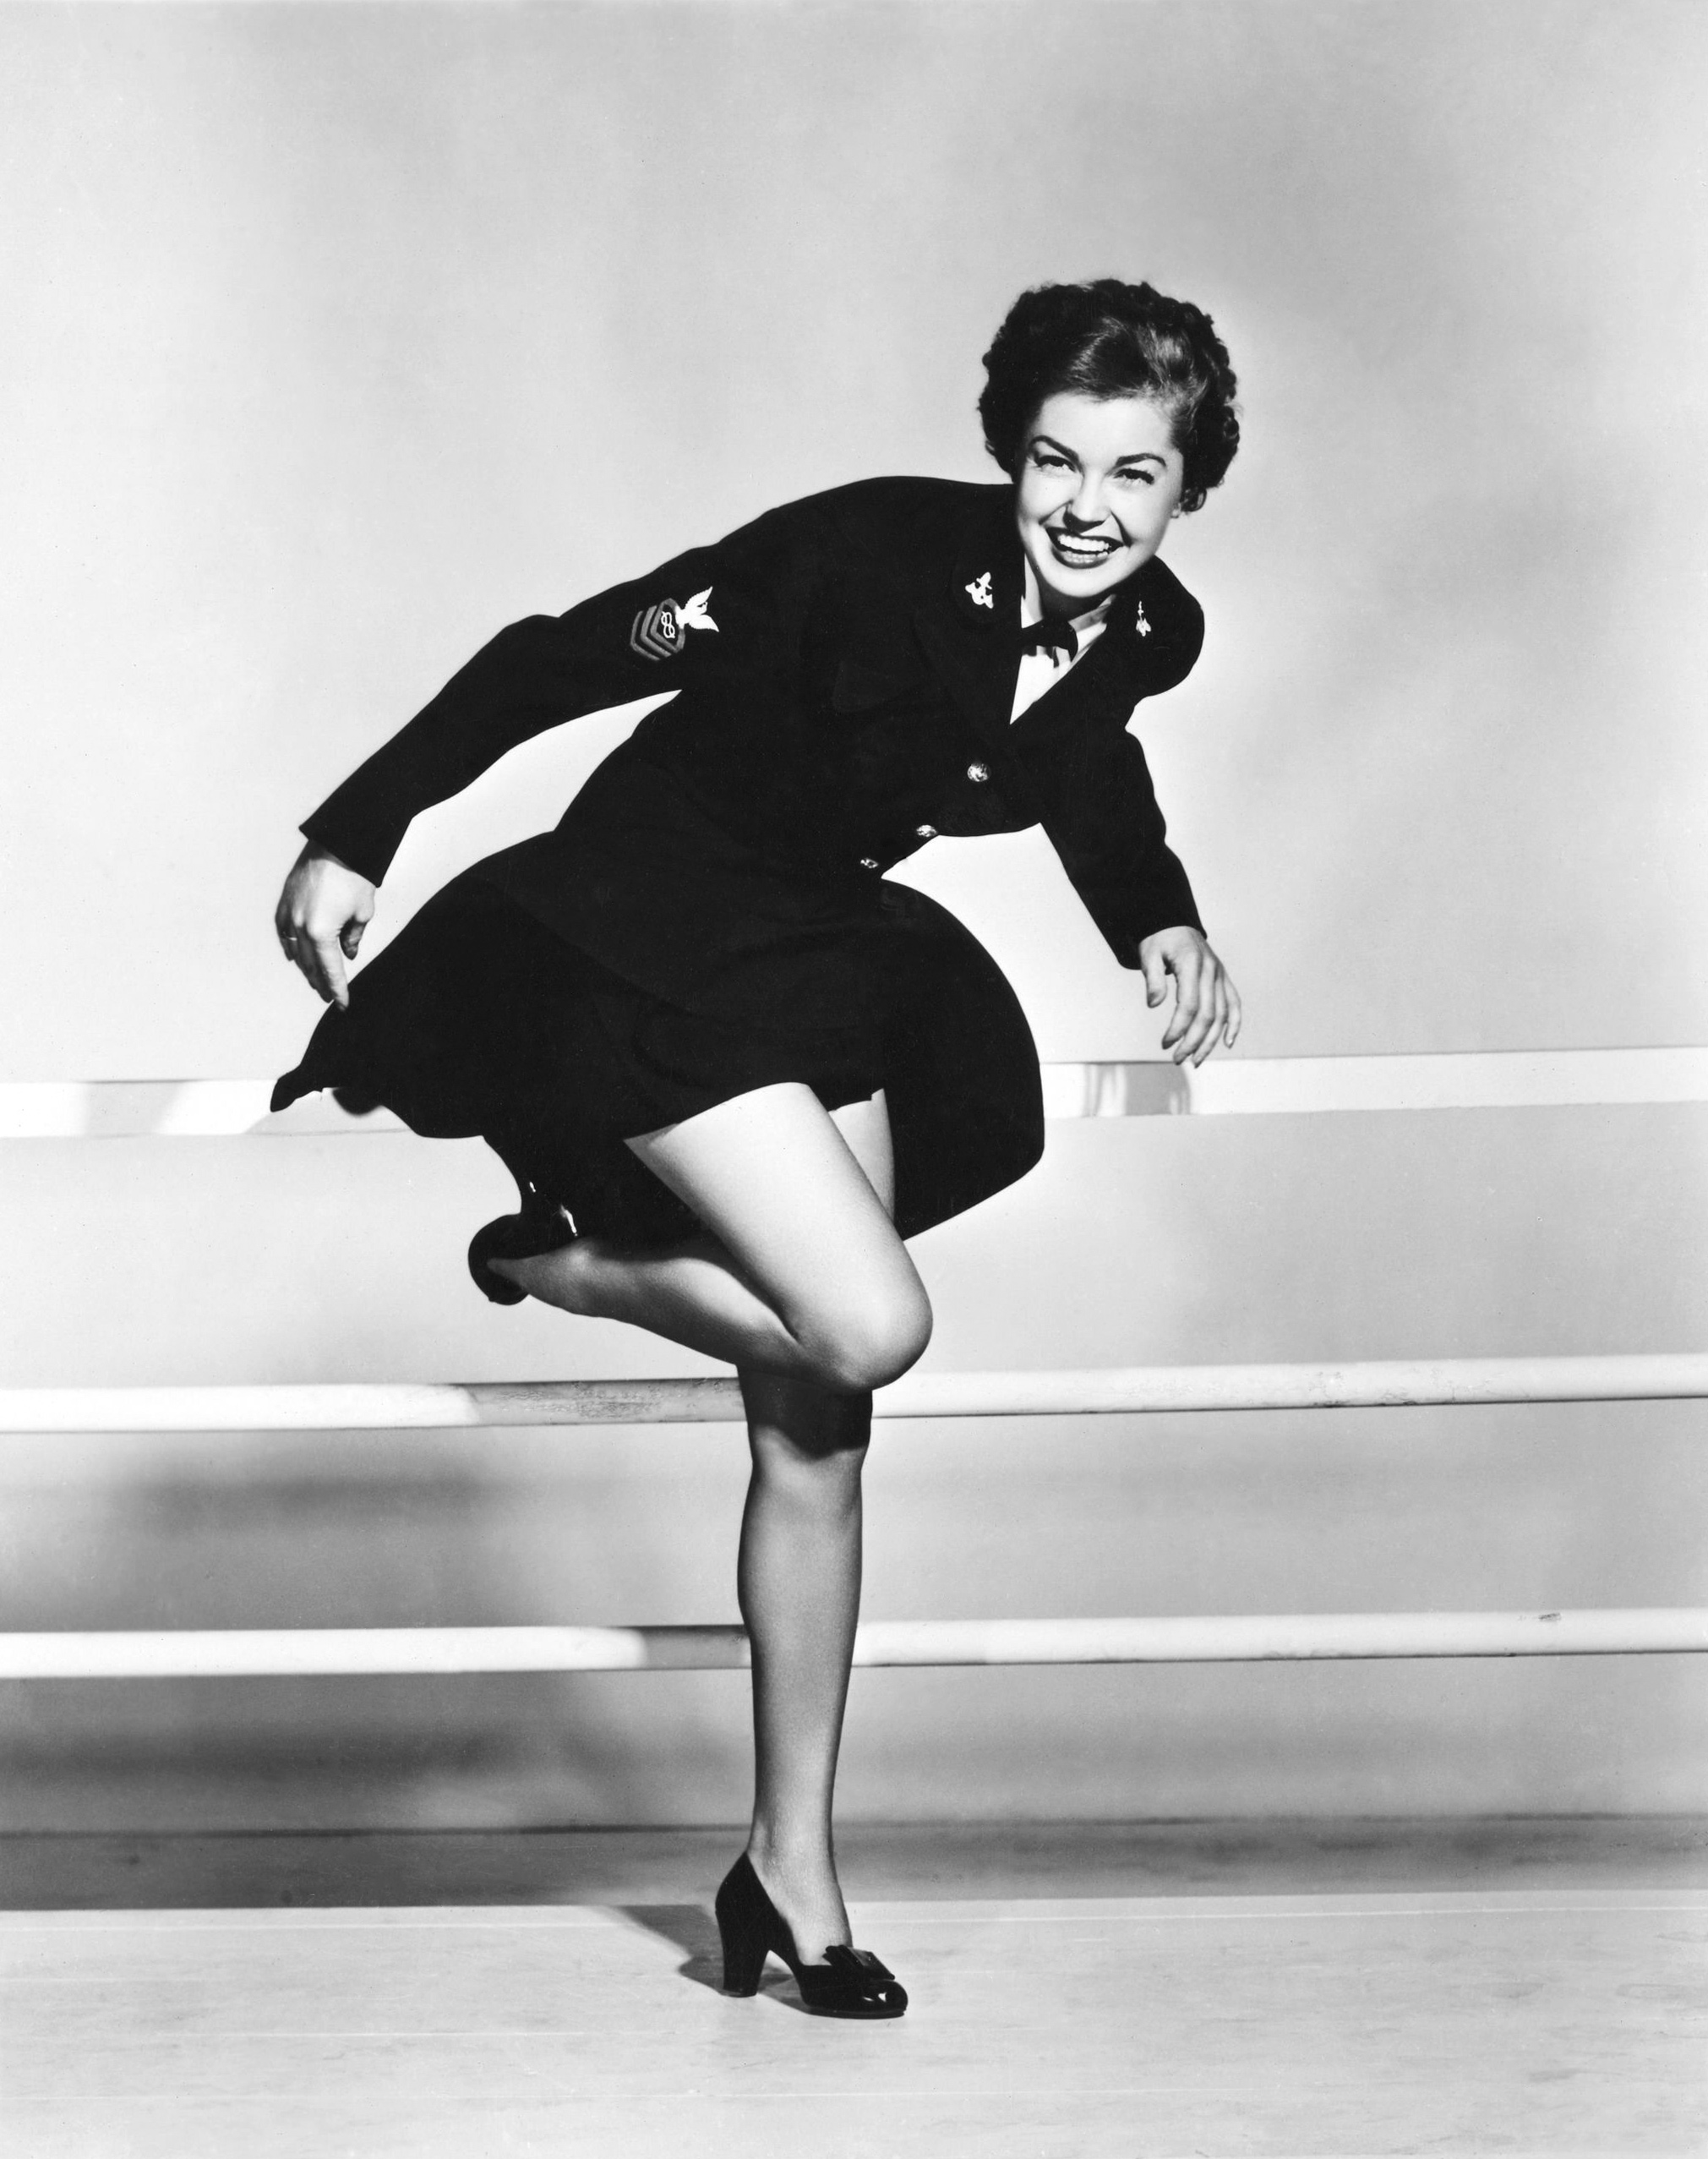 Esther Williams-NRFPT